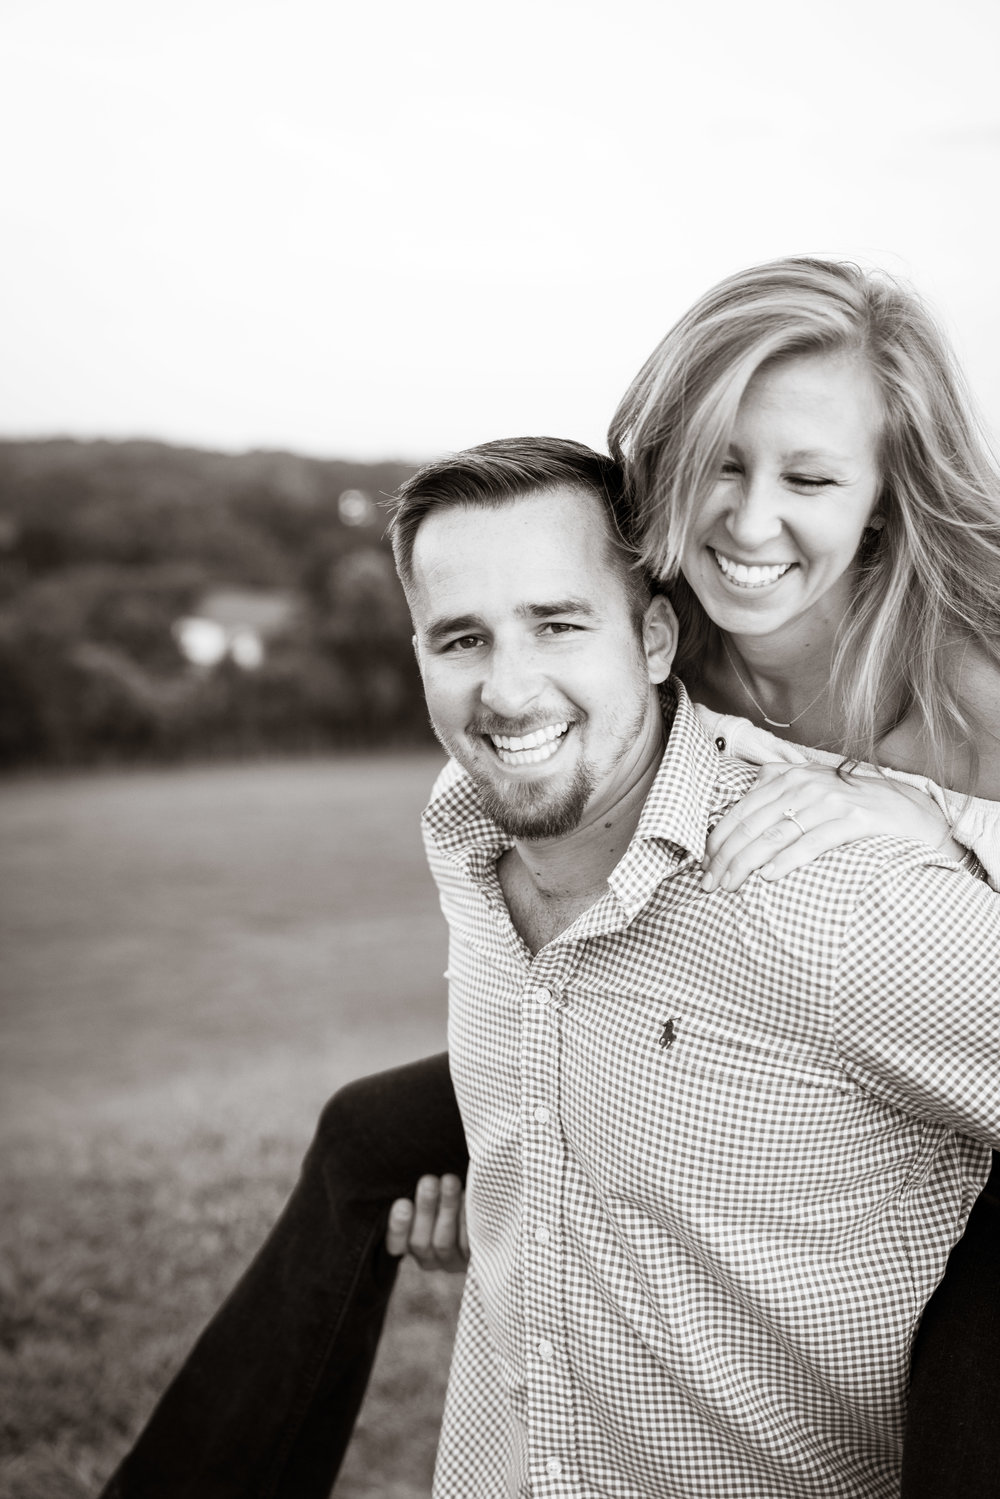 Having fun | Engagement Session in Clemson SC